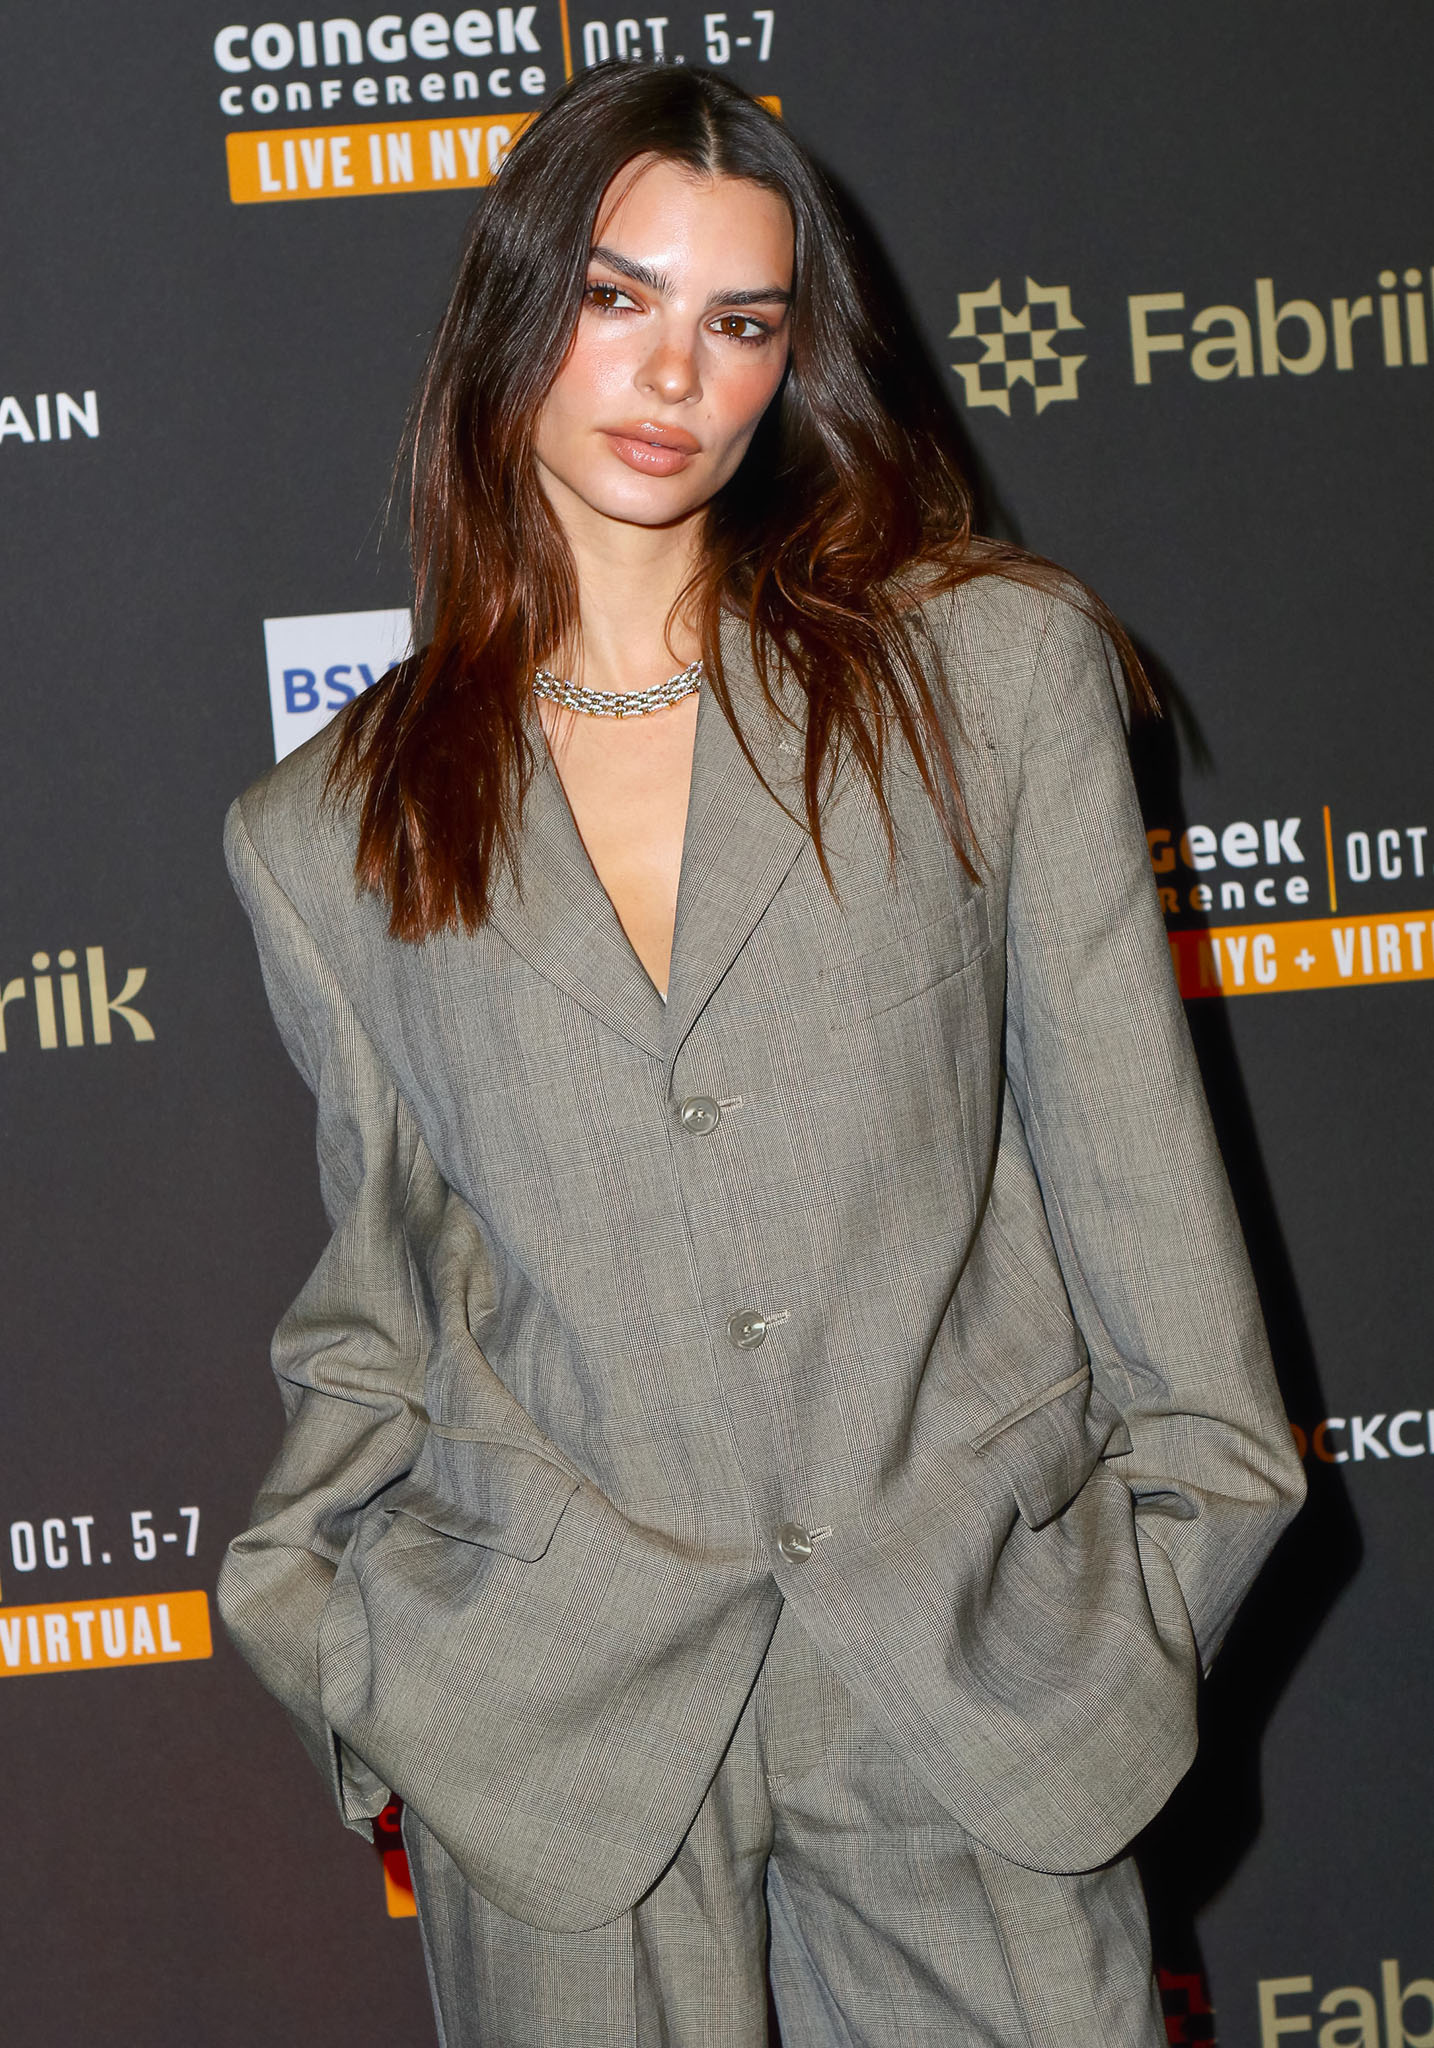 Emily Ratajkowski wears her signature sultry look with tousled hair and smokey eye-makeup